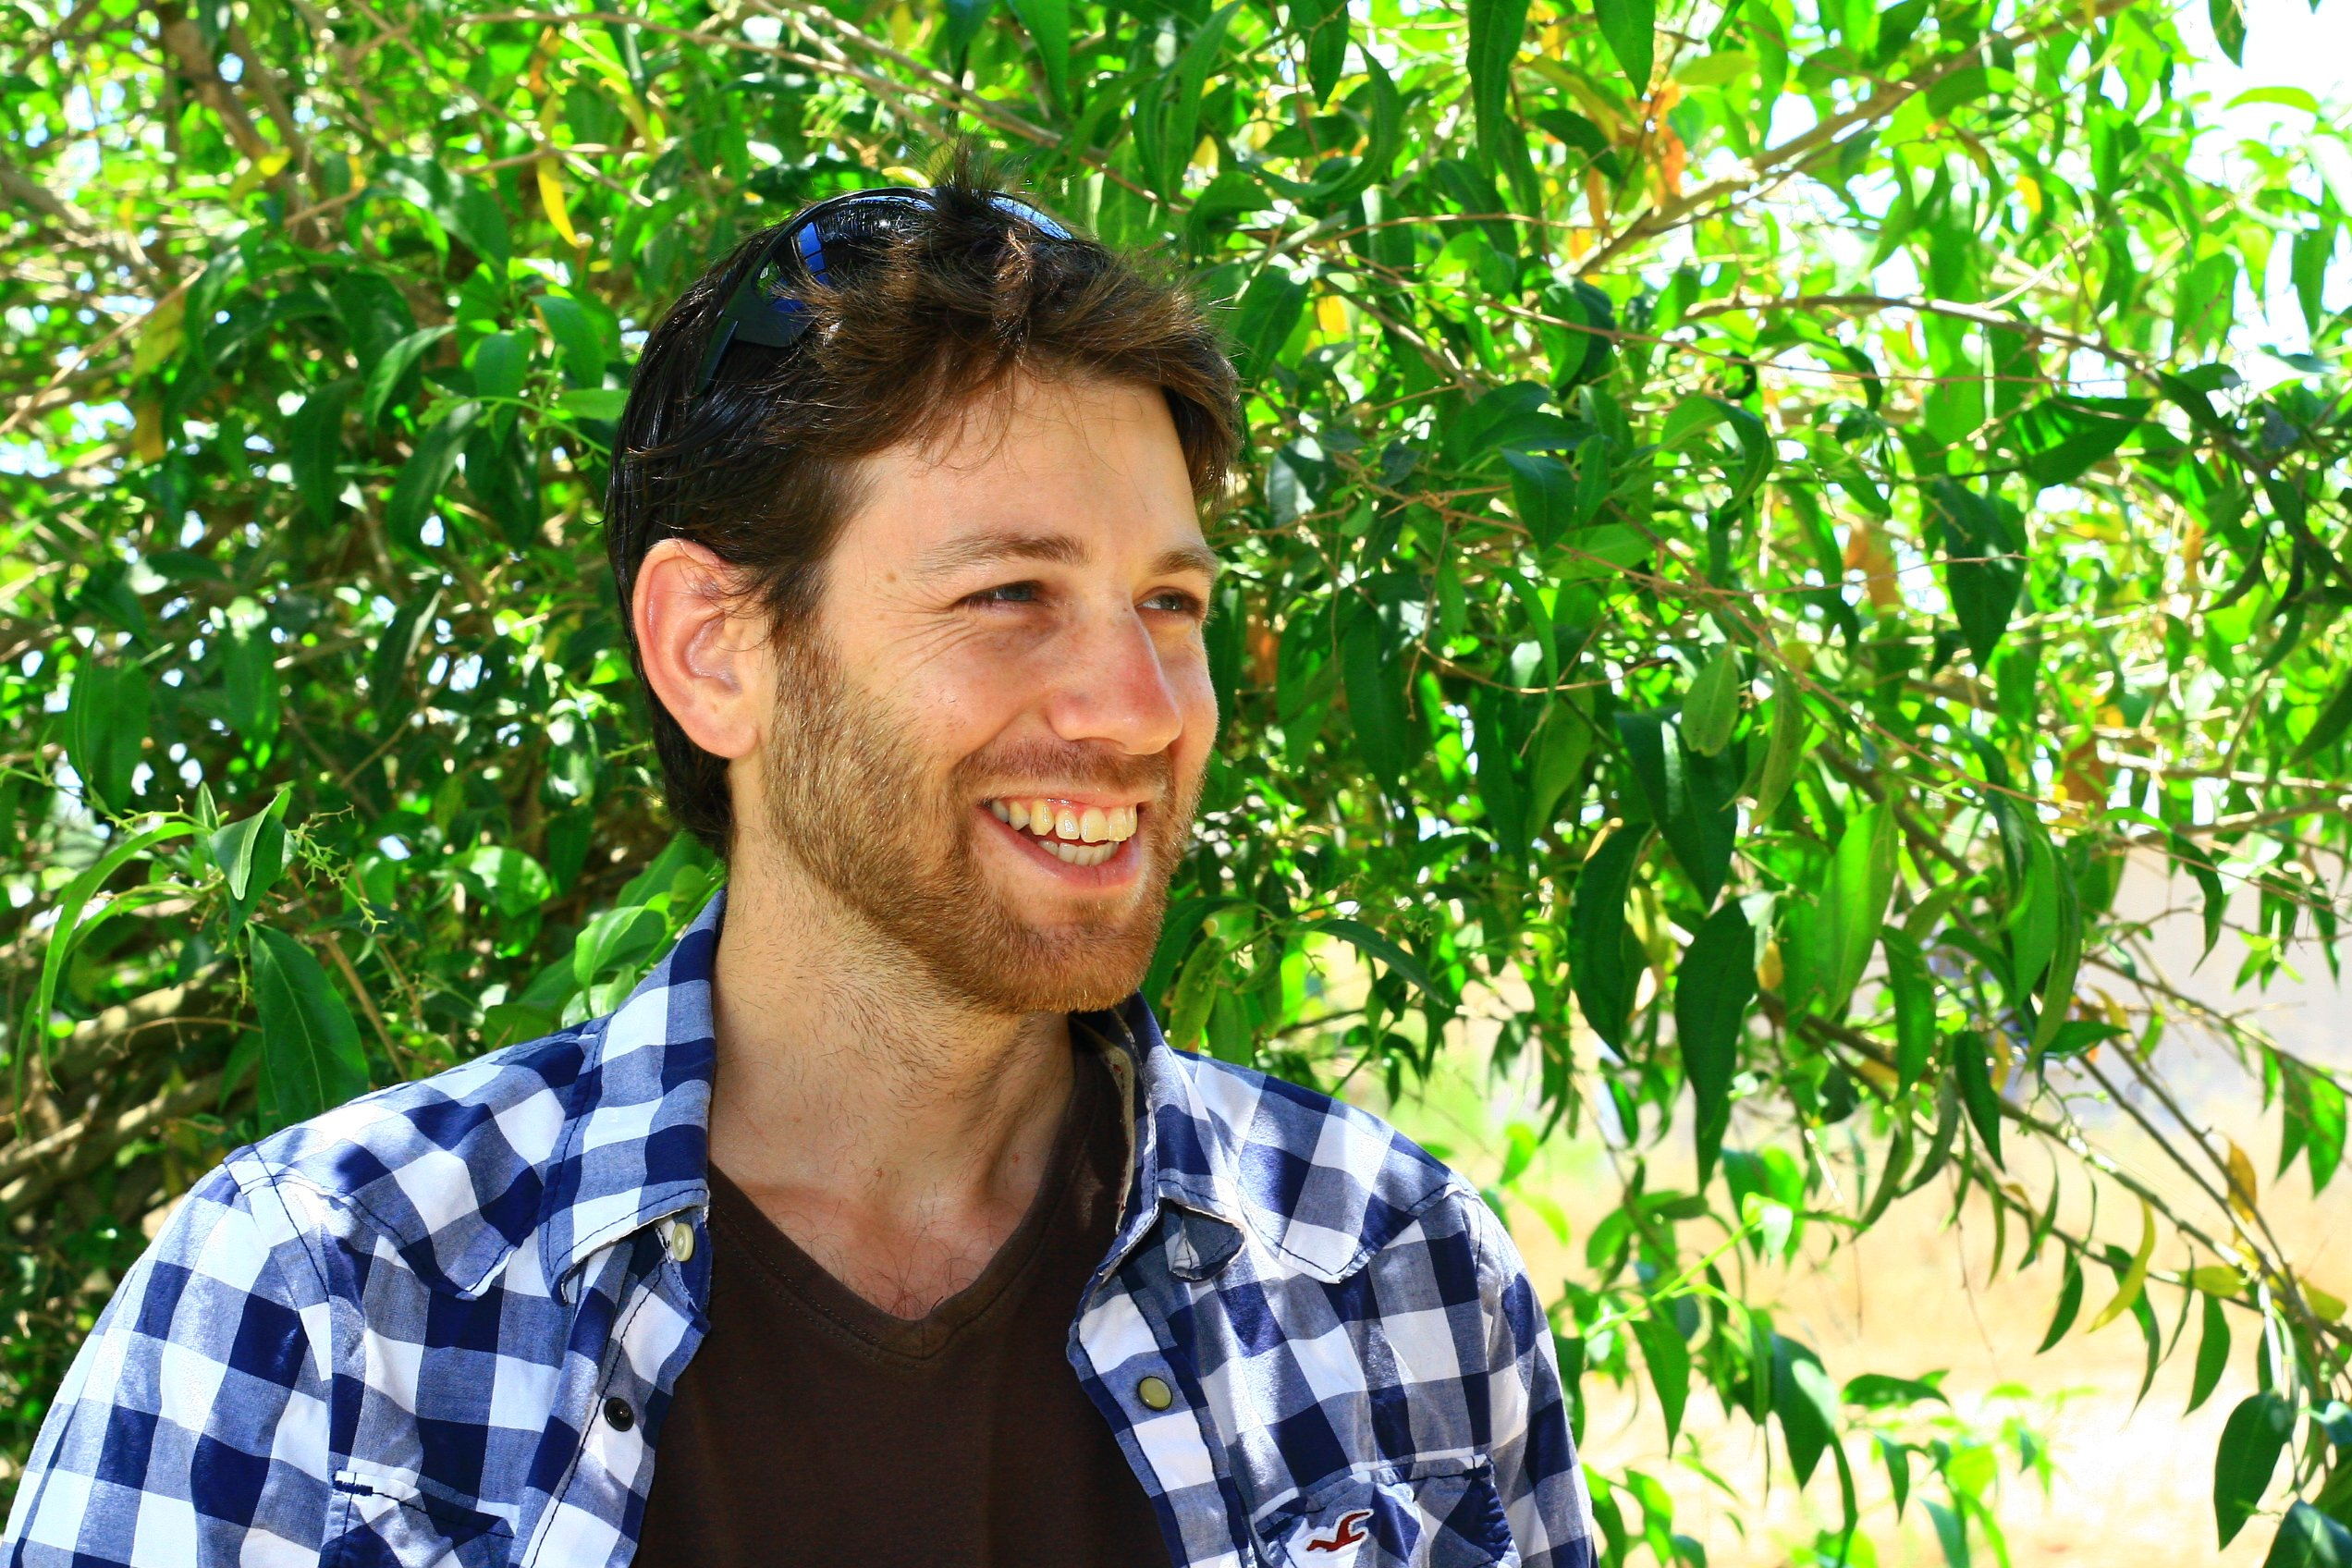 """<img src=""""Omer Zur.jpg"""" alt=""""Photo of a smiling Omer Zur wearing a blue and white shirt standing in front of a tree with green leaves"""">"""